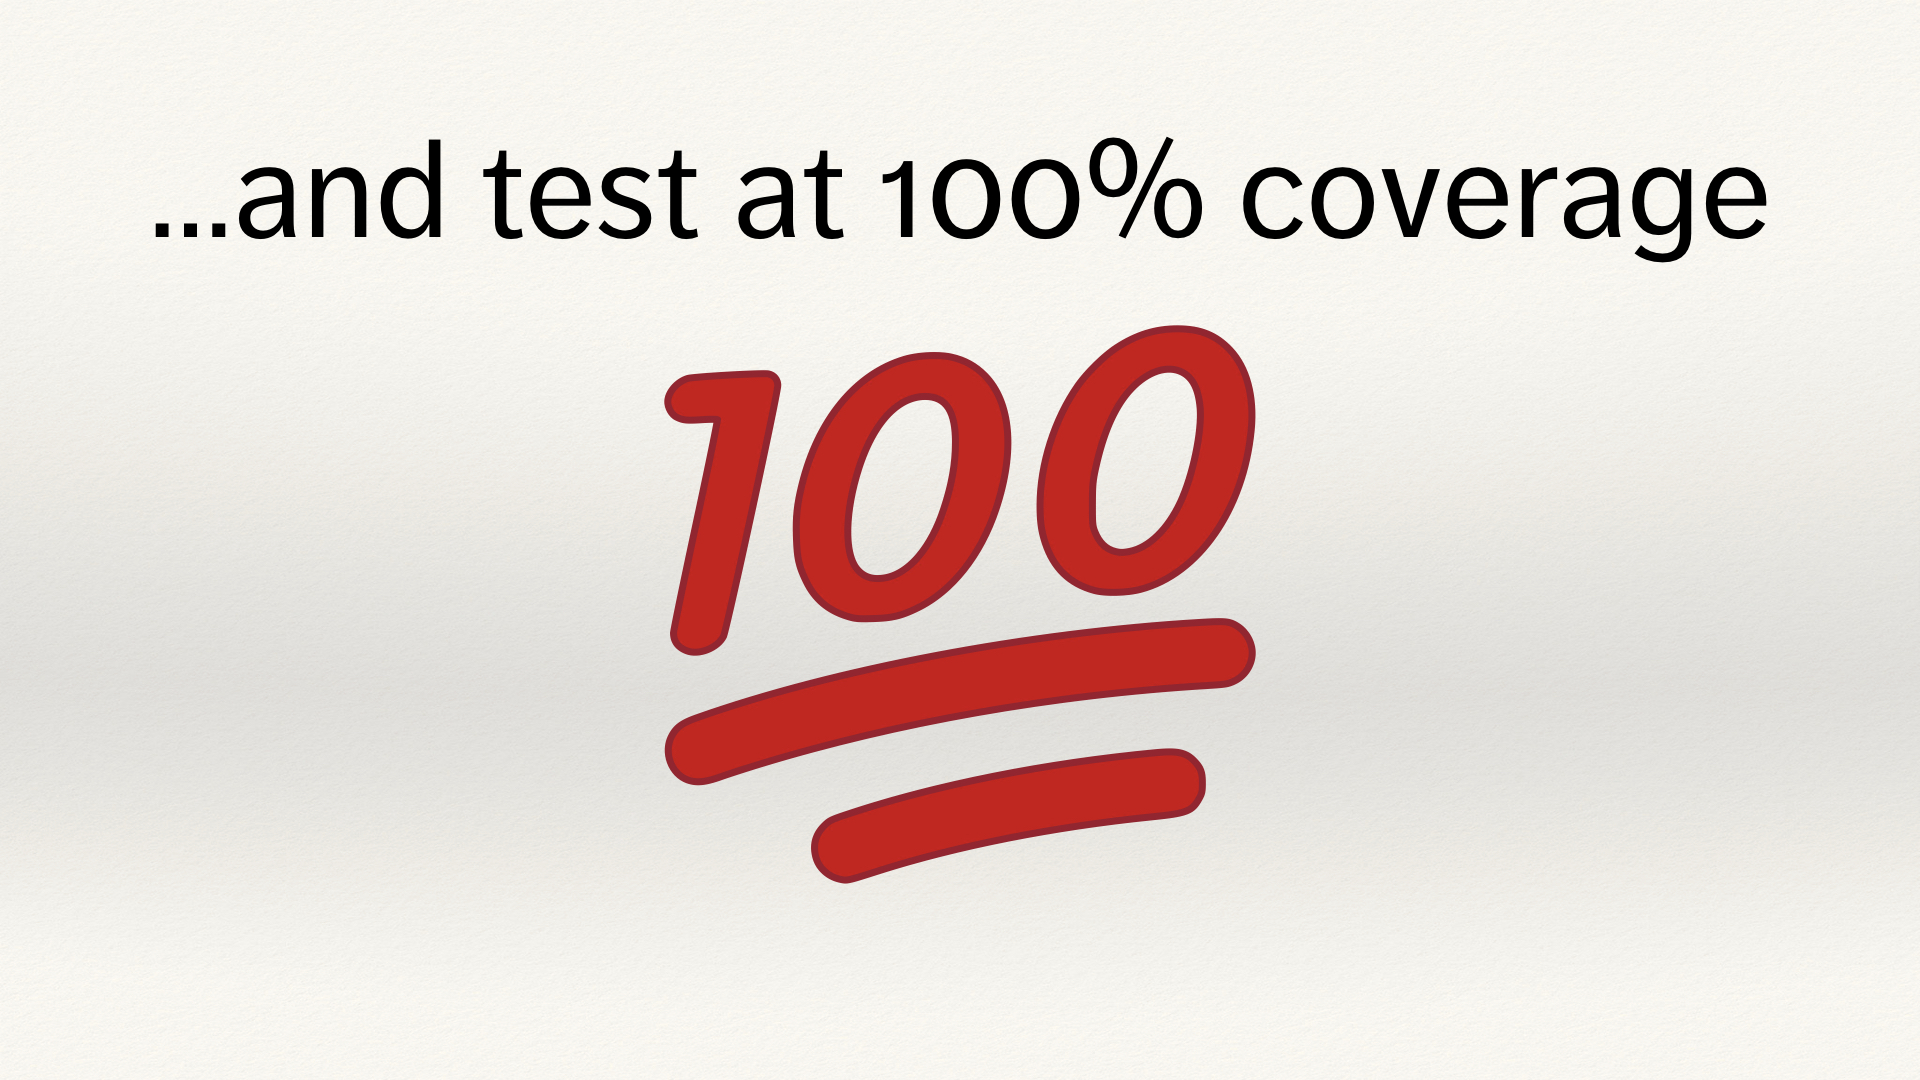 "A red 100 emoji, below the text ""and test at 100% coverage""."